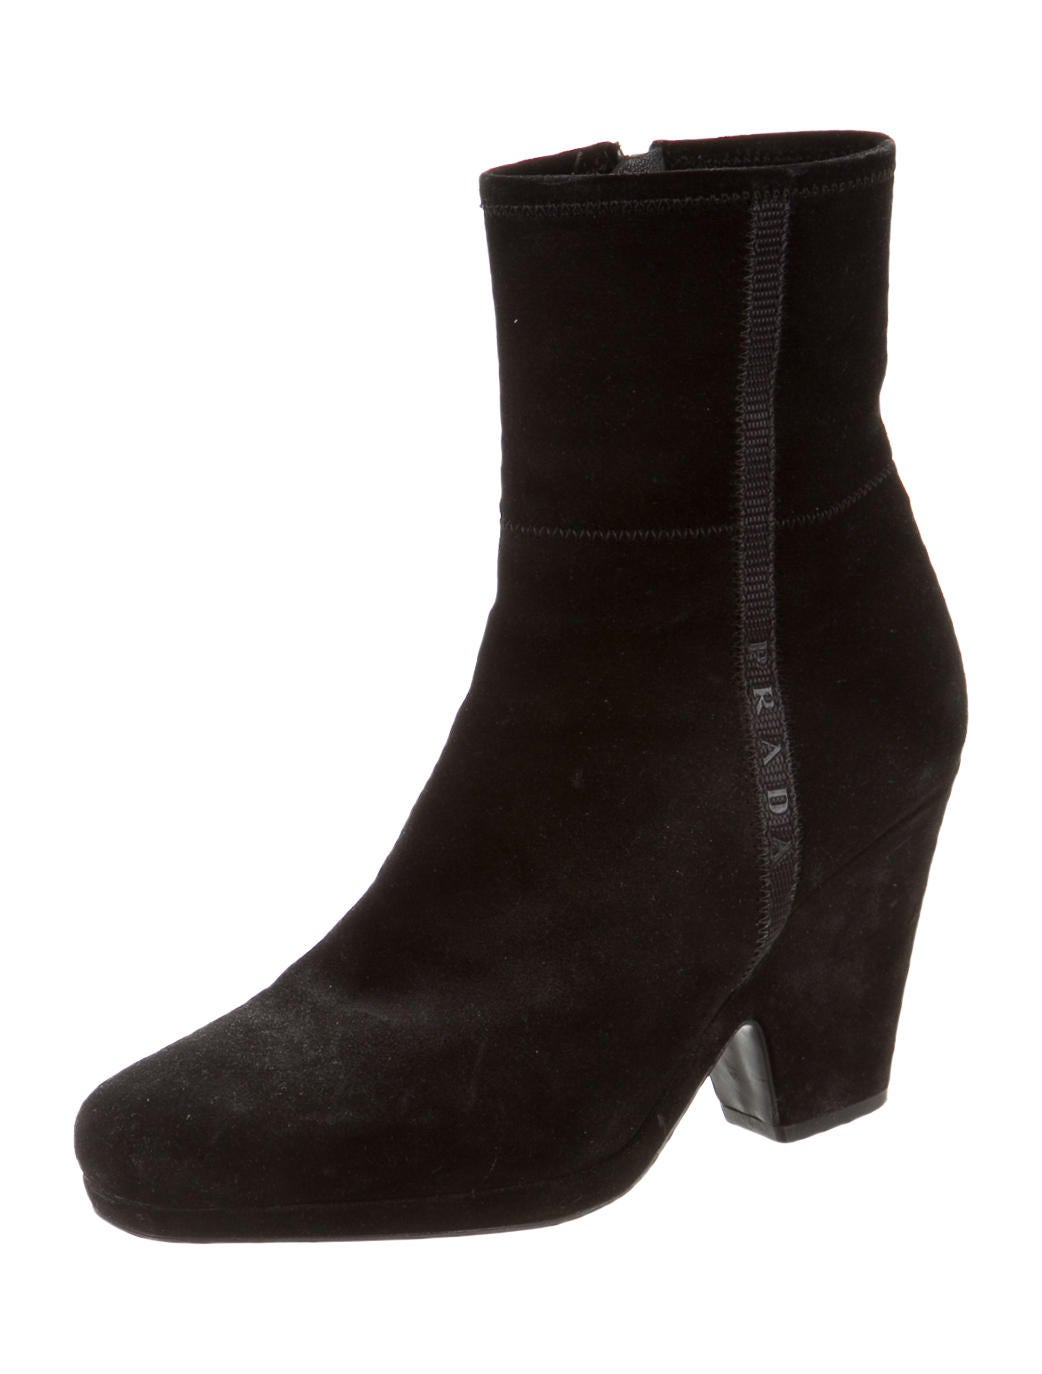 prada suede ankle boots shoes pra81146 the realreal